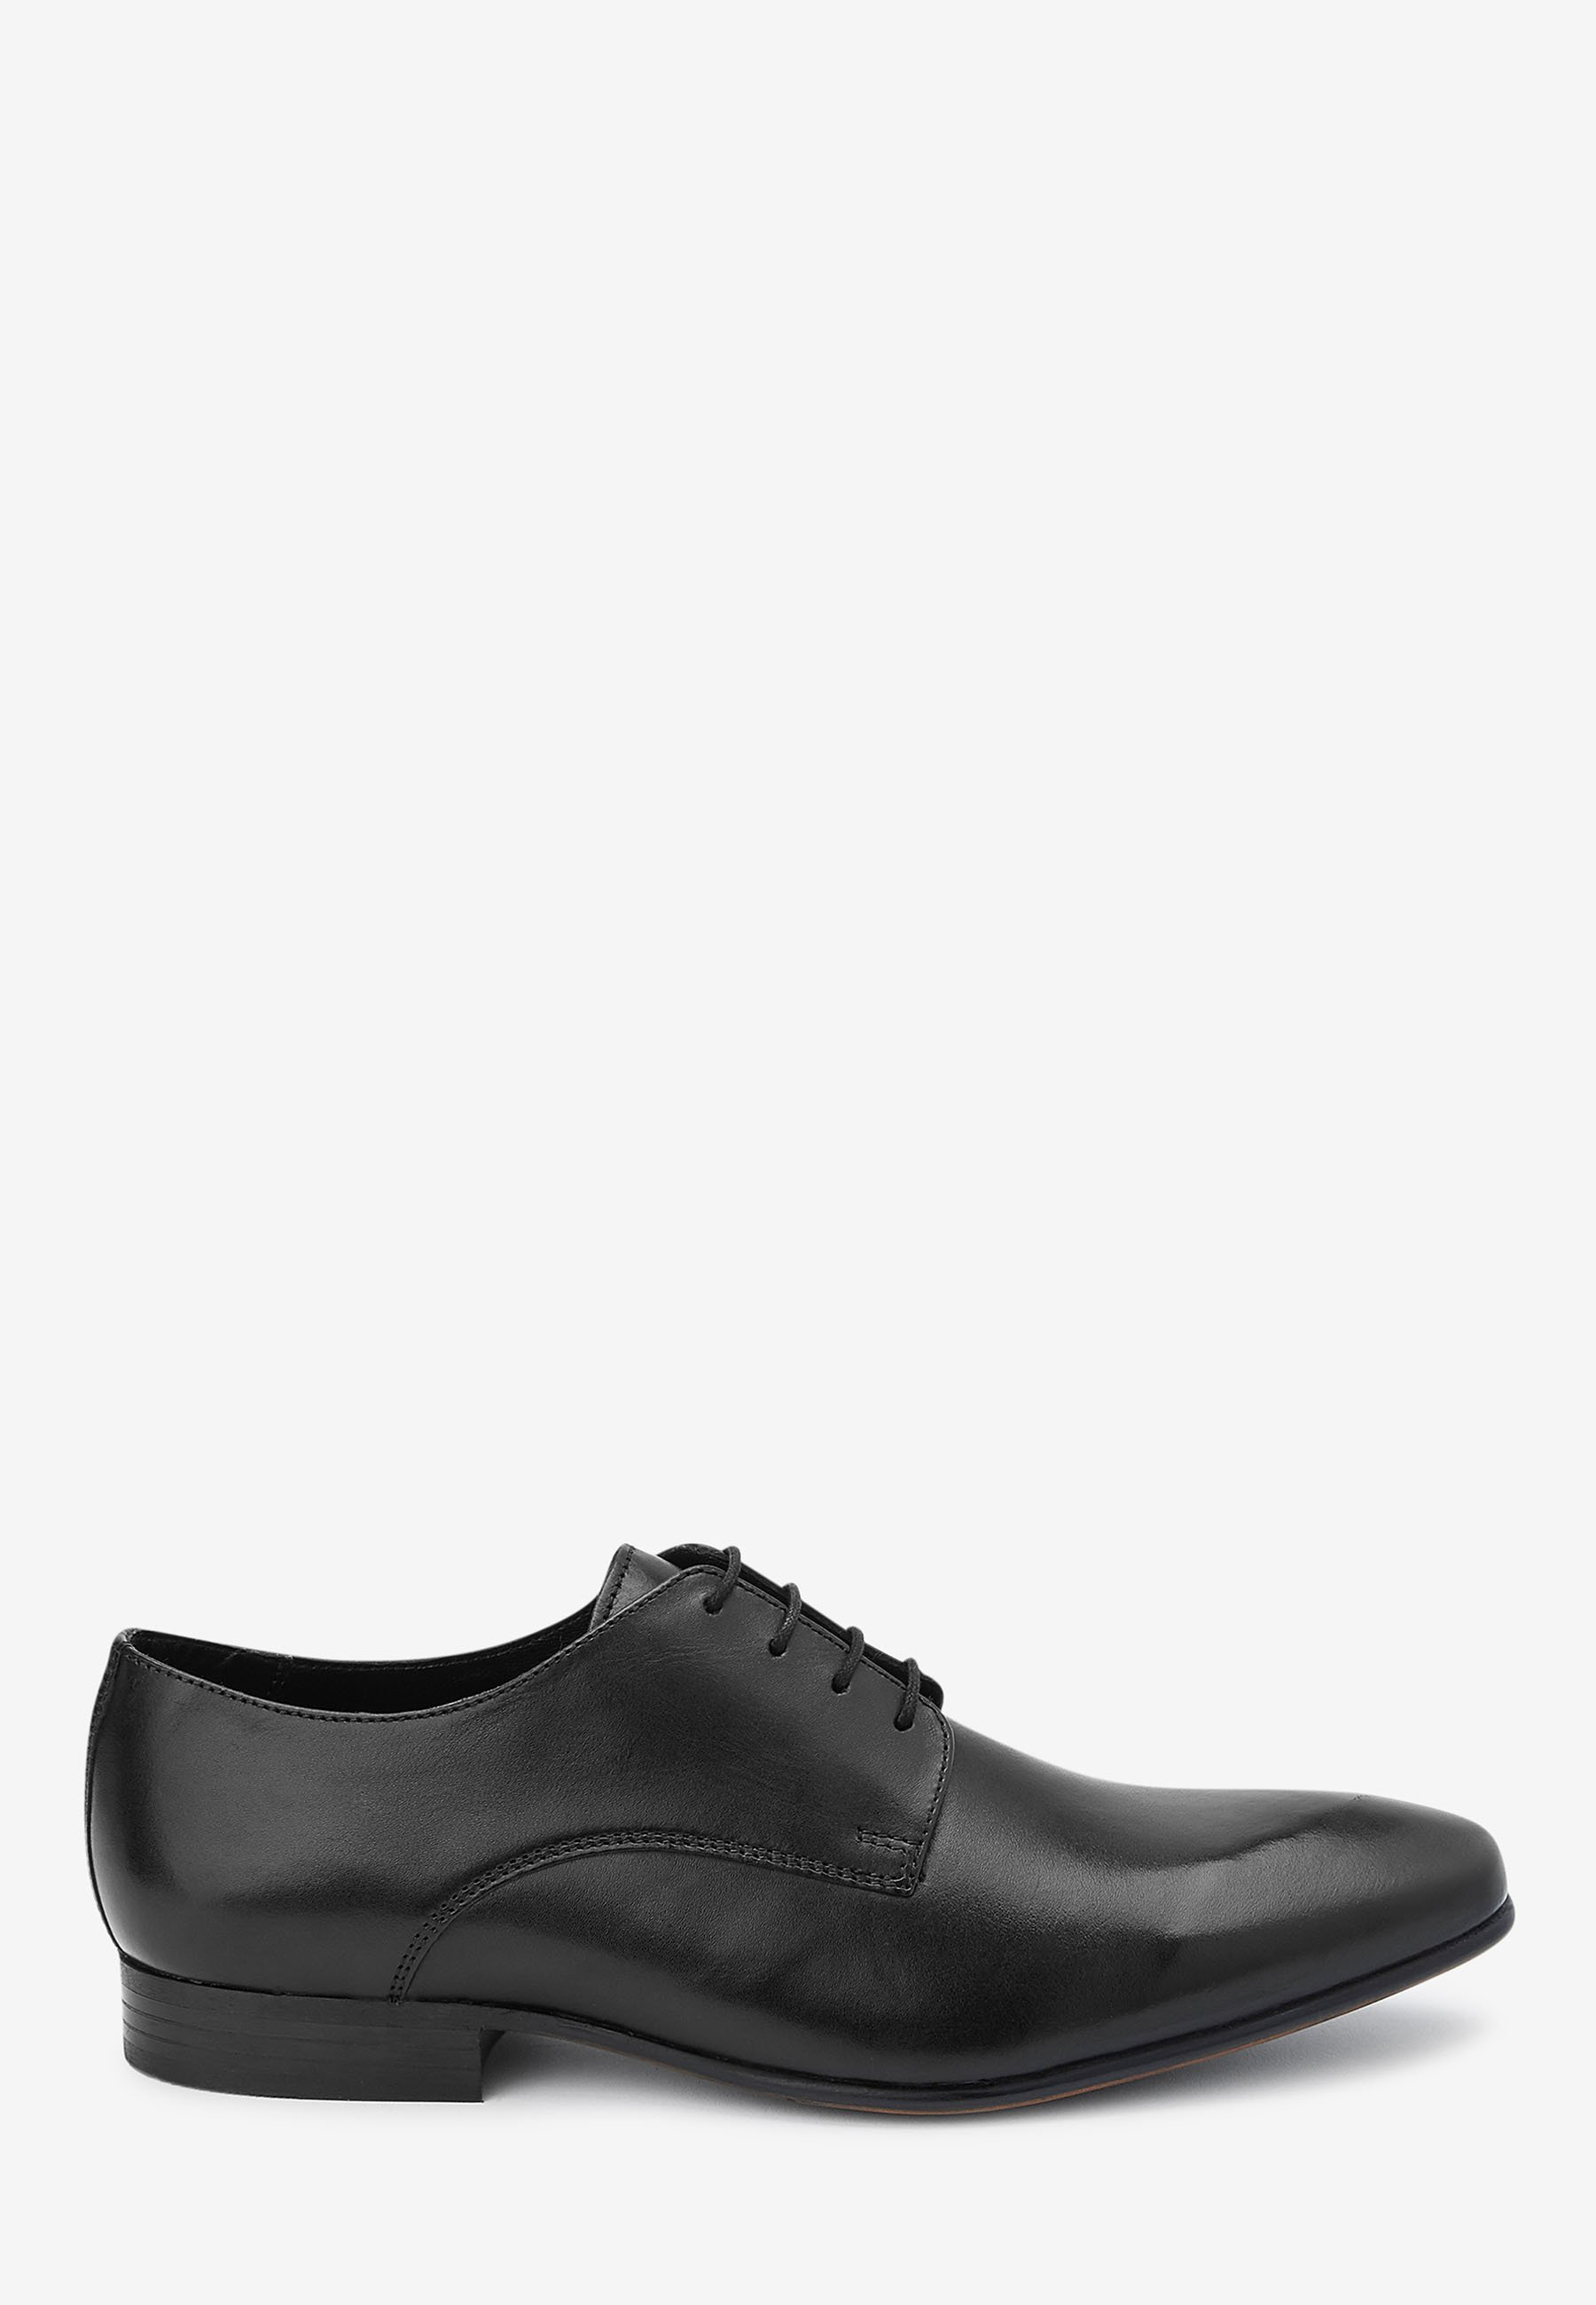 Consiglia economico Scarpe da uomo Next TAN DERBY SHOES Stringate eleganti black